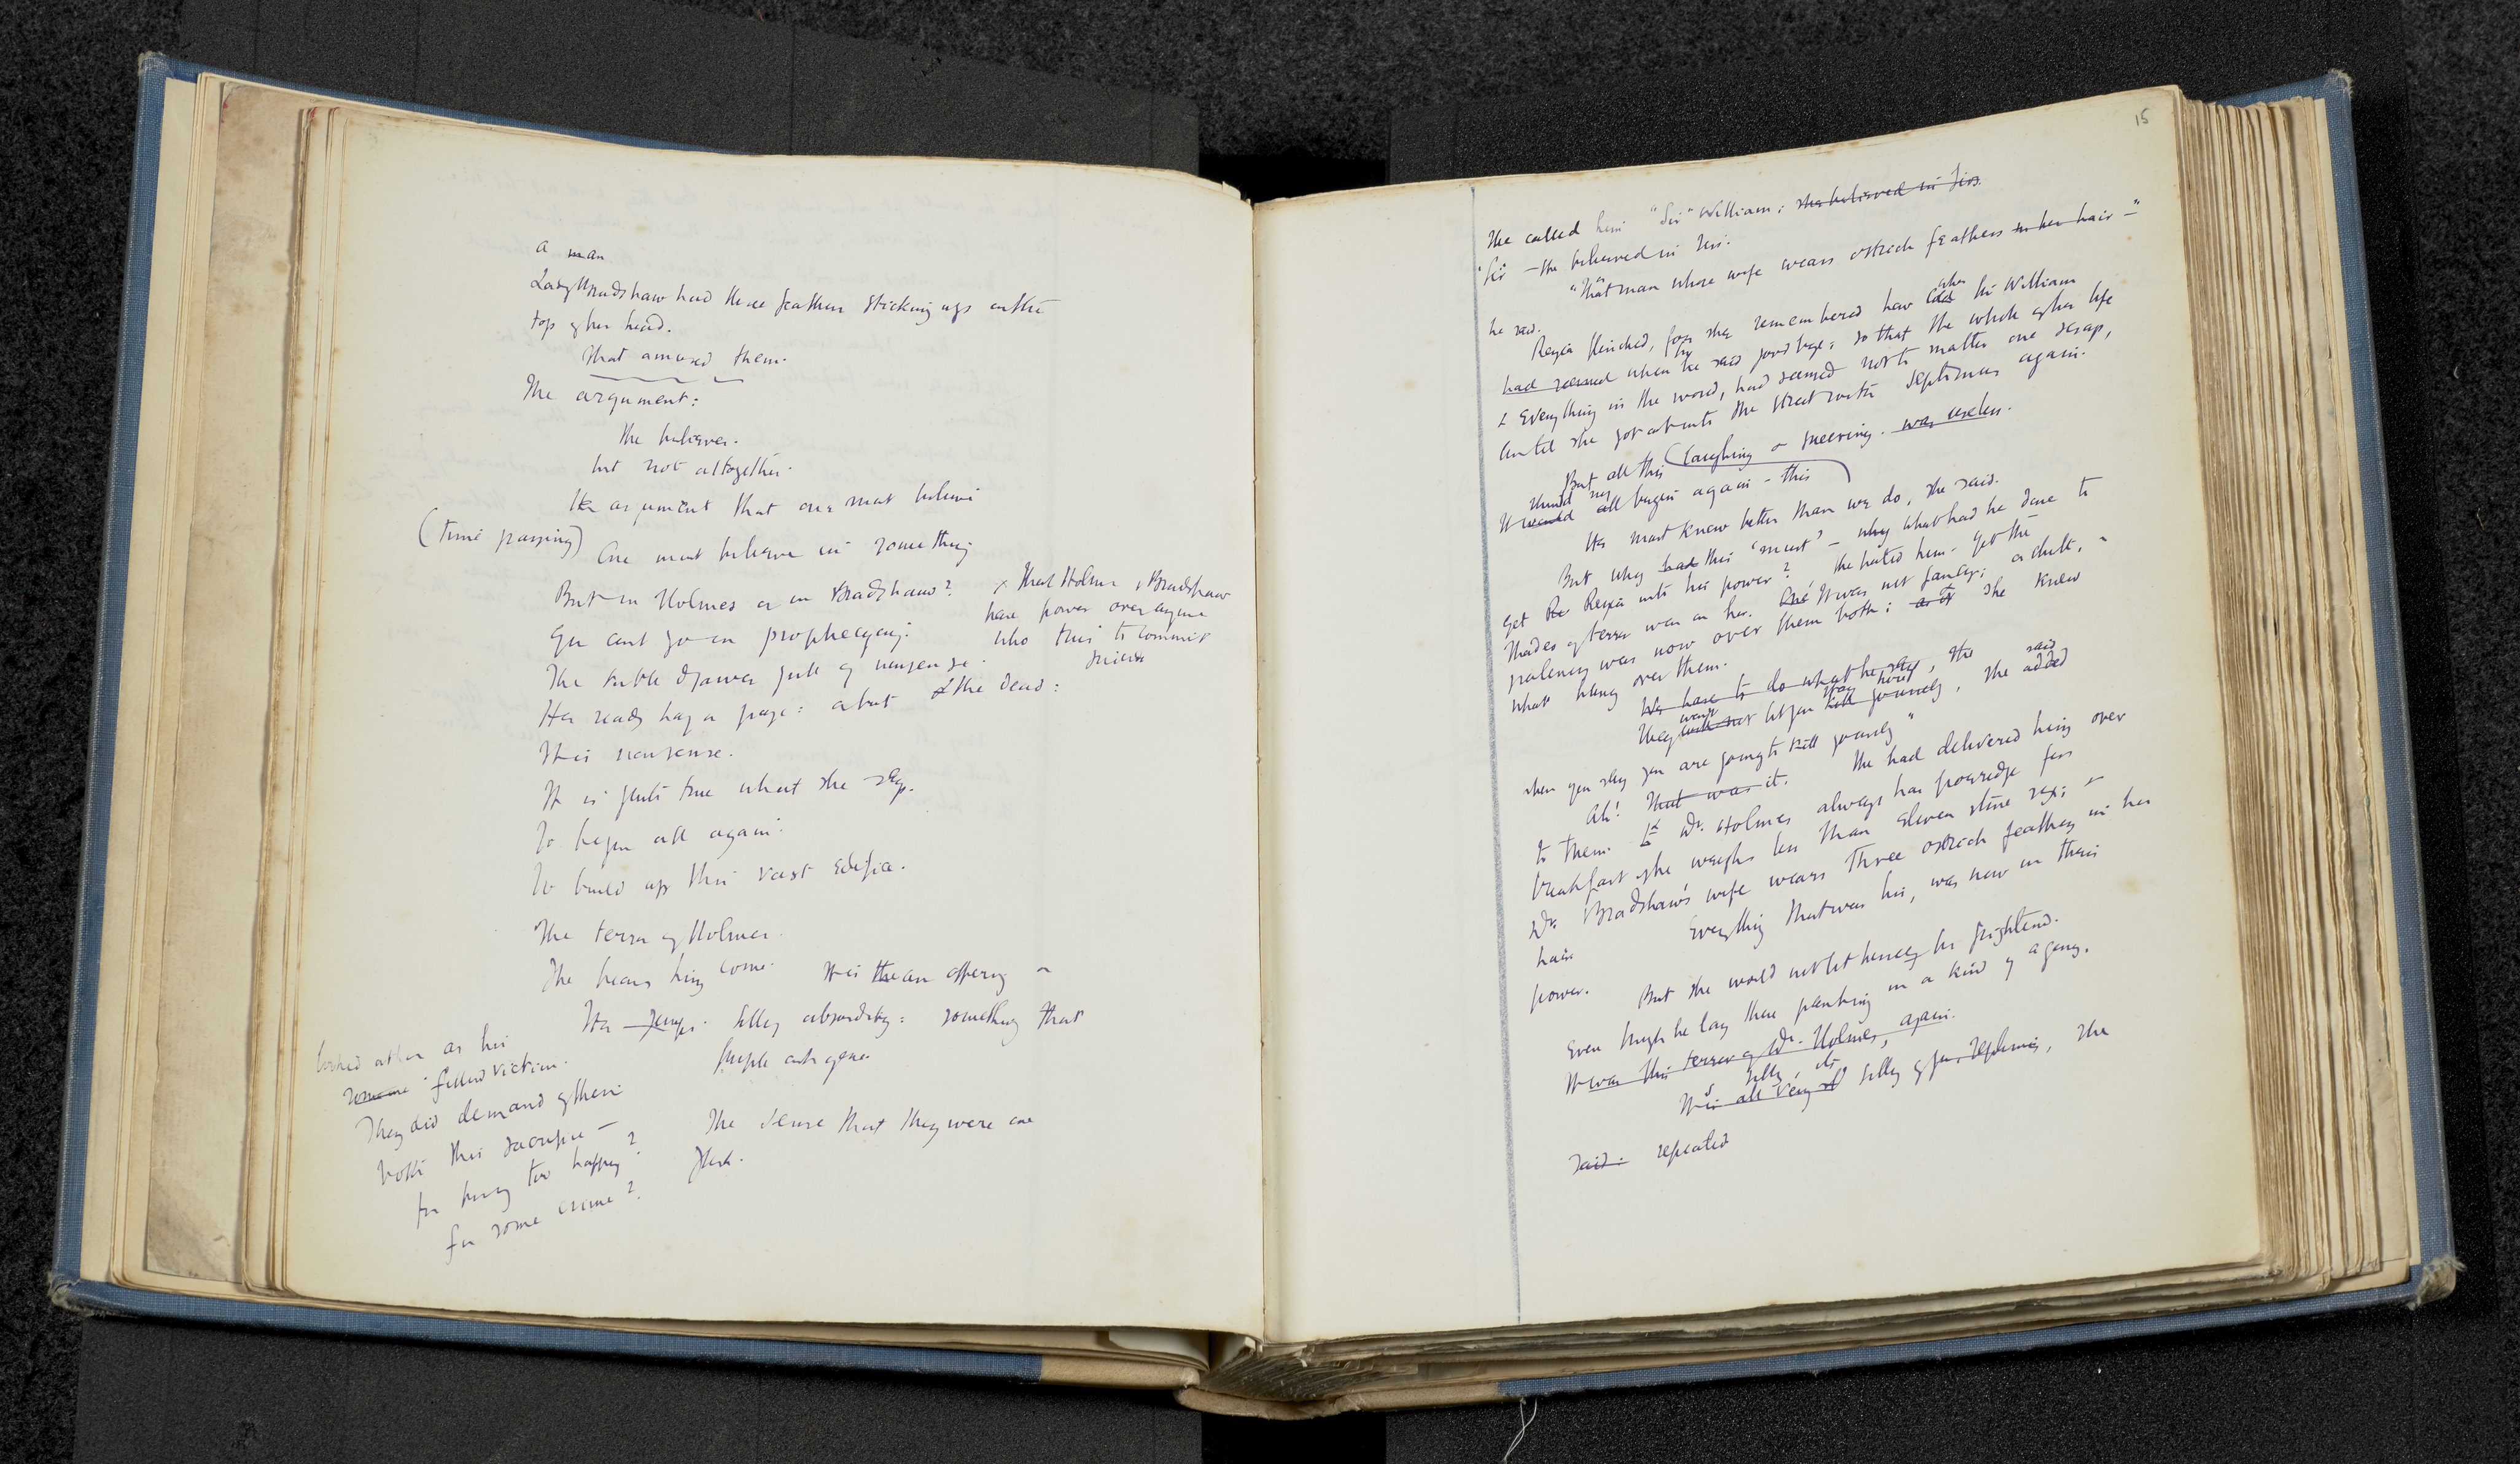 Original manuscript by Virginia Woolf for the novel Mrs Dalloway, 1924. The Society of Authors as the Literary Representative of the Estate of Virginia Woolf.